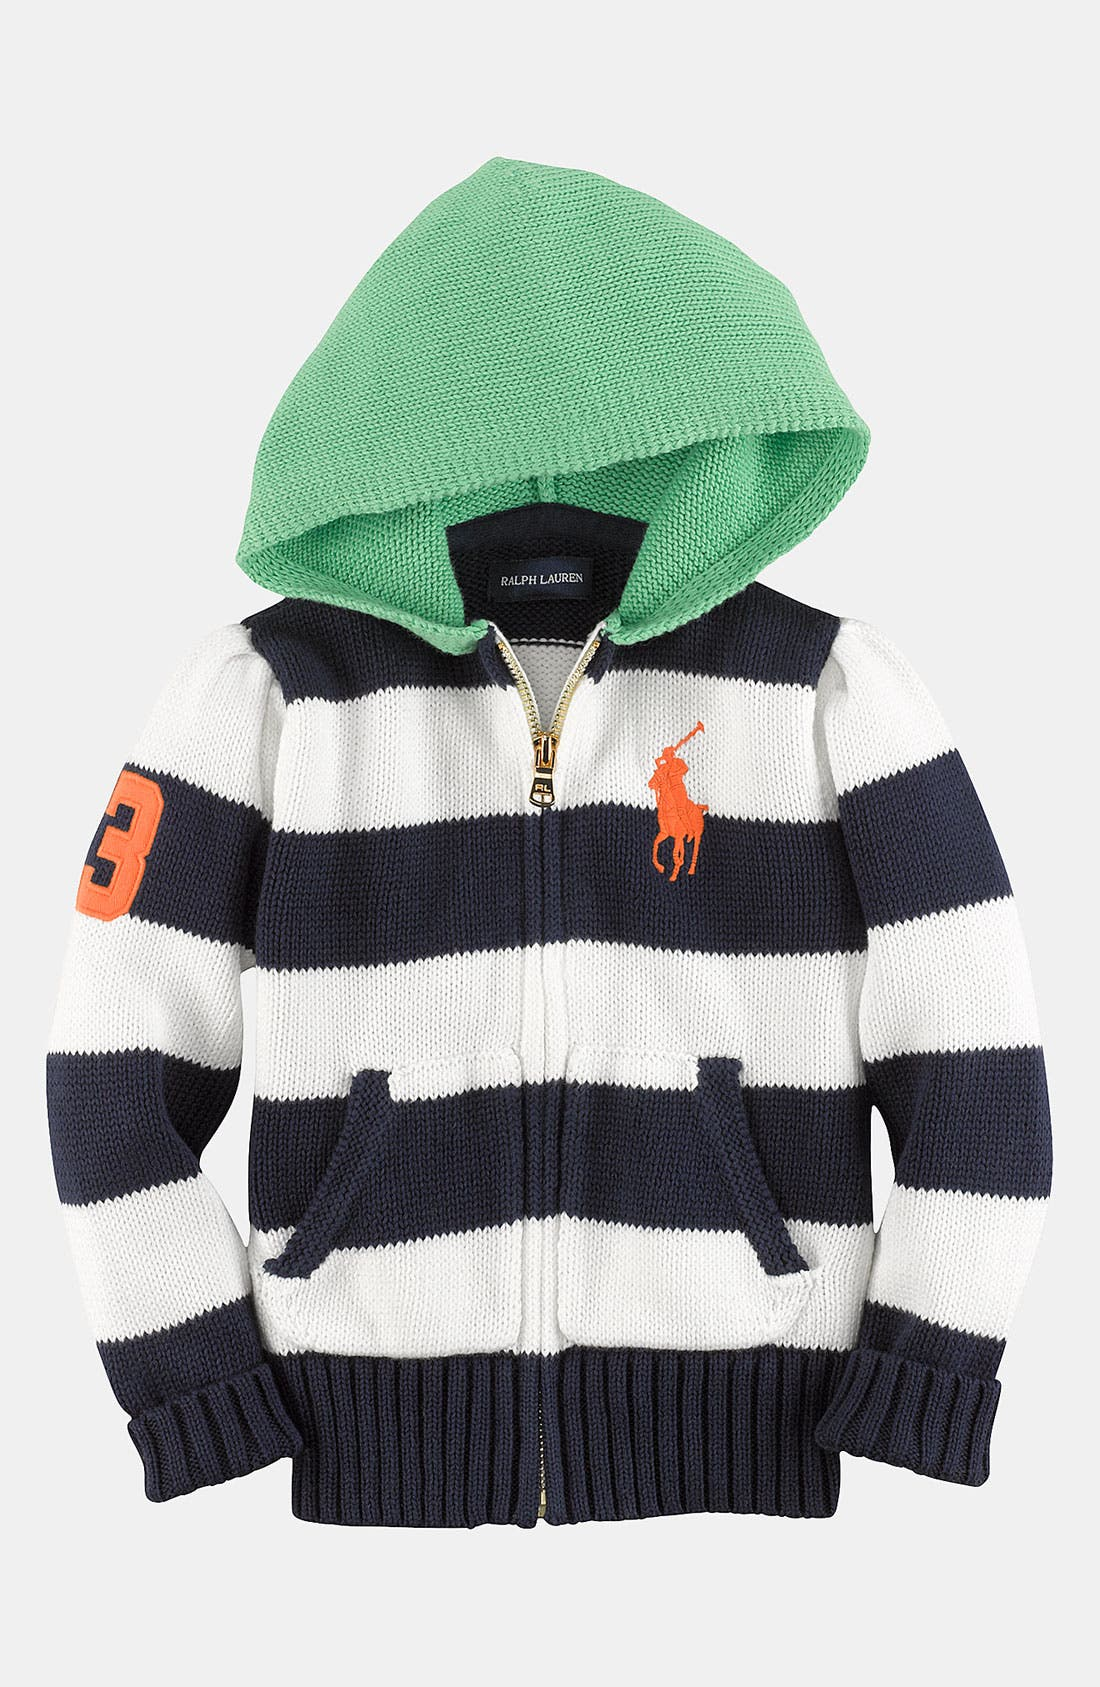 Alternate Image 1 Selected - Ralph Lauren Knit Hoodie Sweater (Toddler)